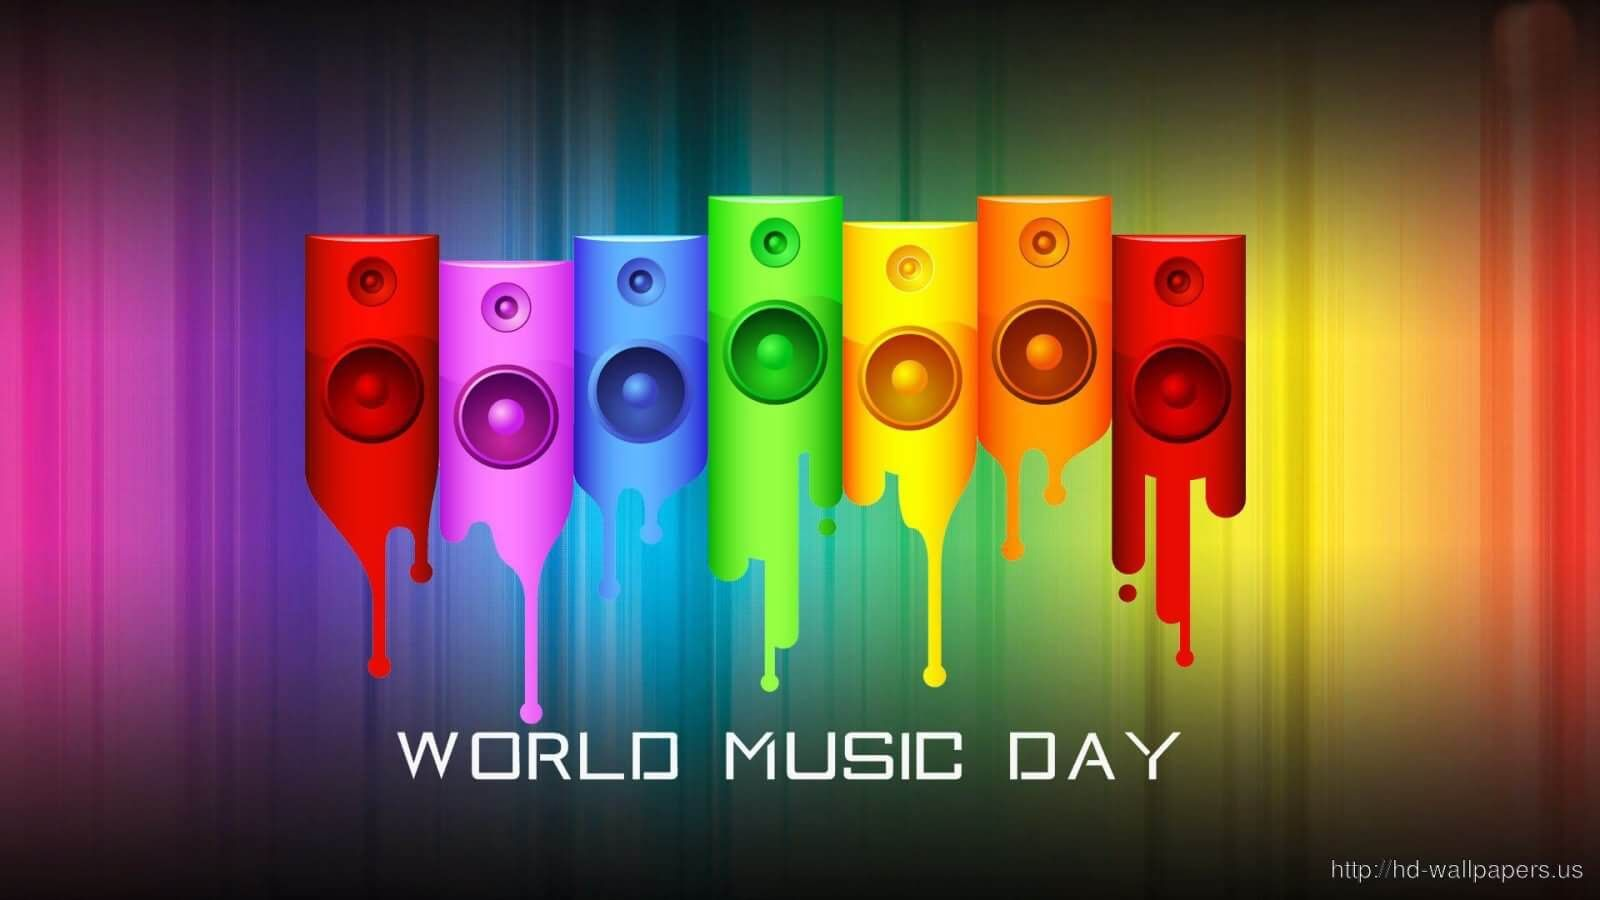 Happy world music day 2016 wishes Music day is on 21 june Get 1600x900